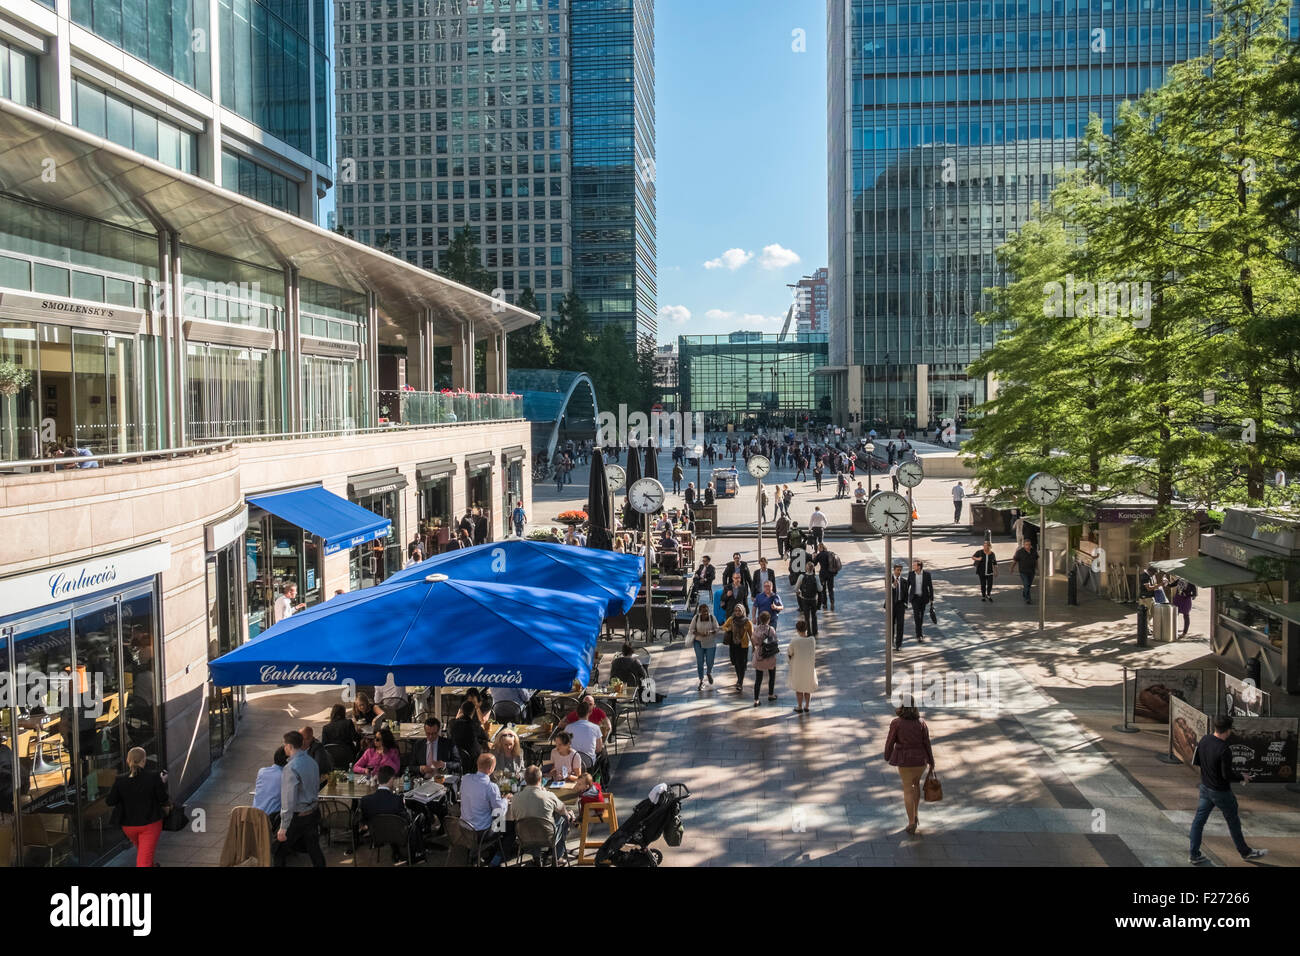 Pedestrianised area of Reuters Plaza, Canary Wharf financial district, London, England UK Stock Photo